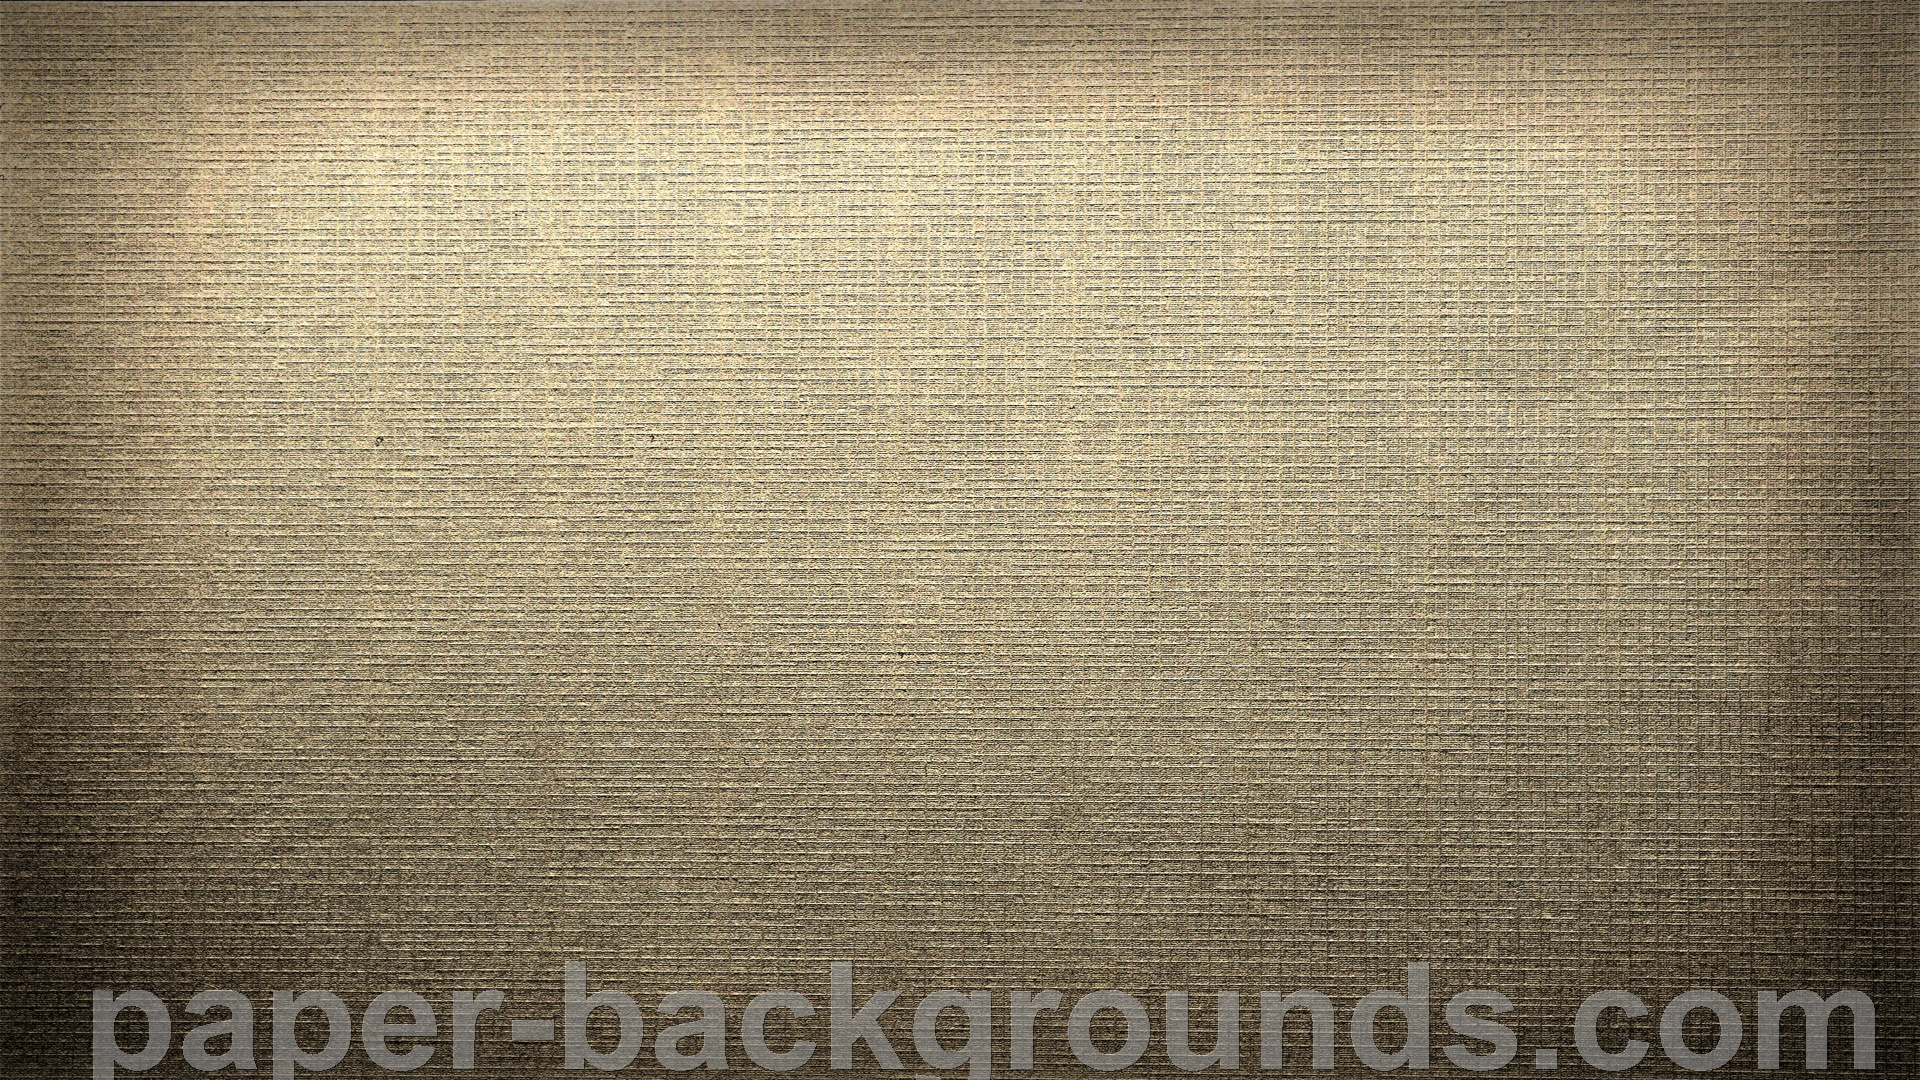 Vintage Paper Background Cardboard Texture HD